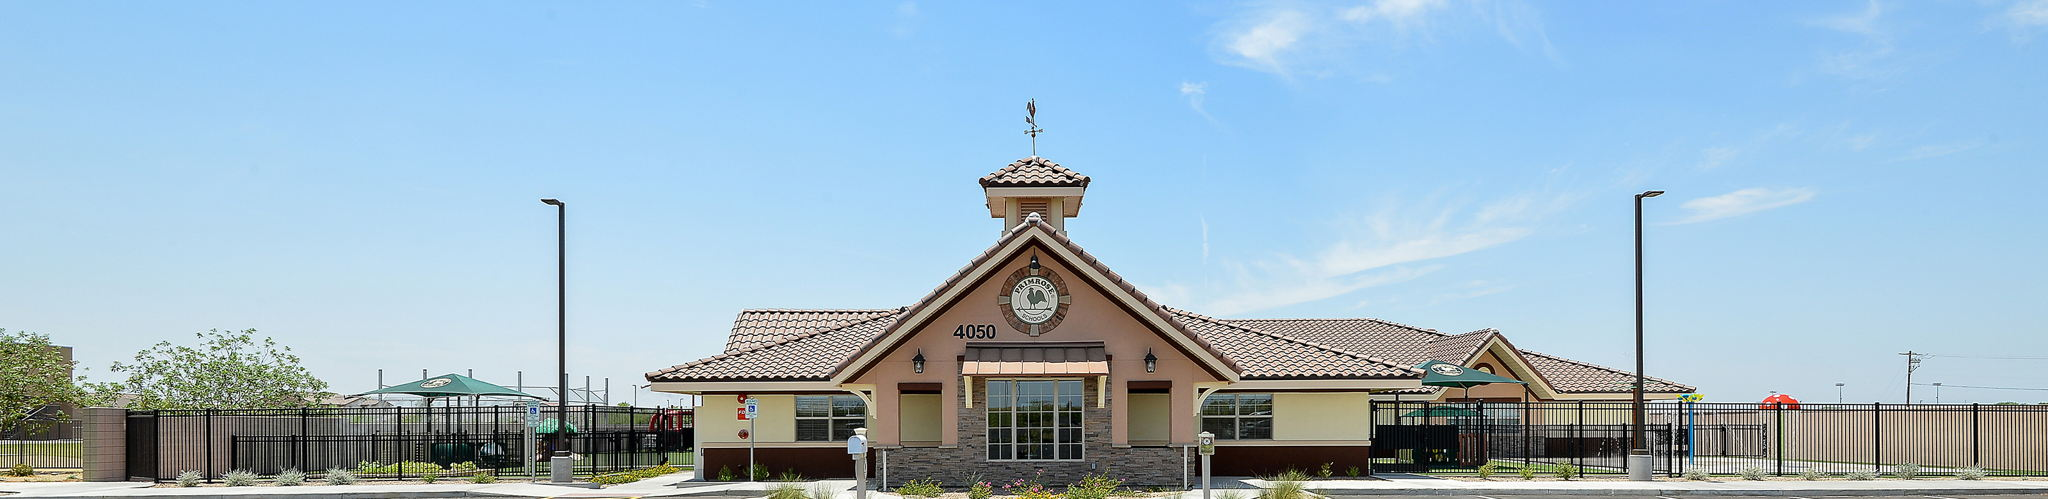 Exterior of a Primrose School of Gilbert at Santan